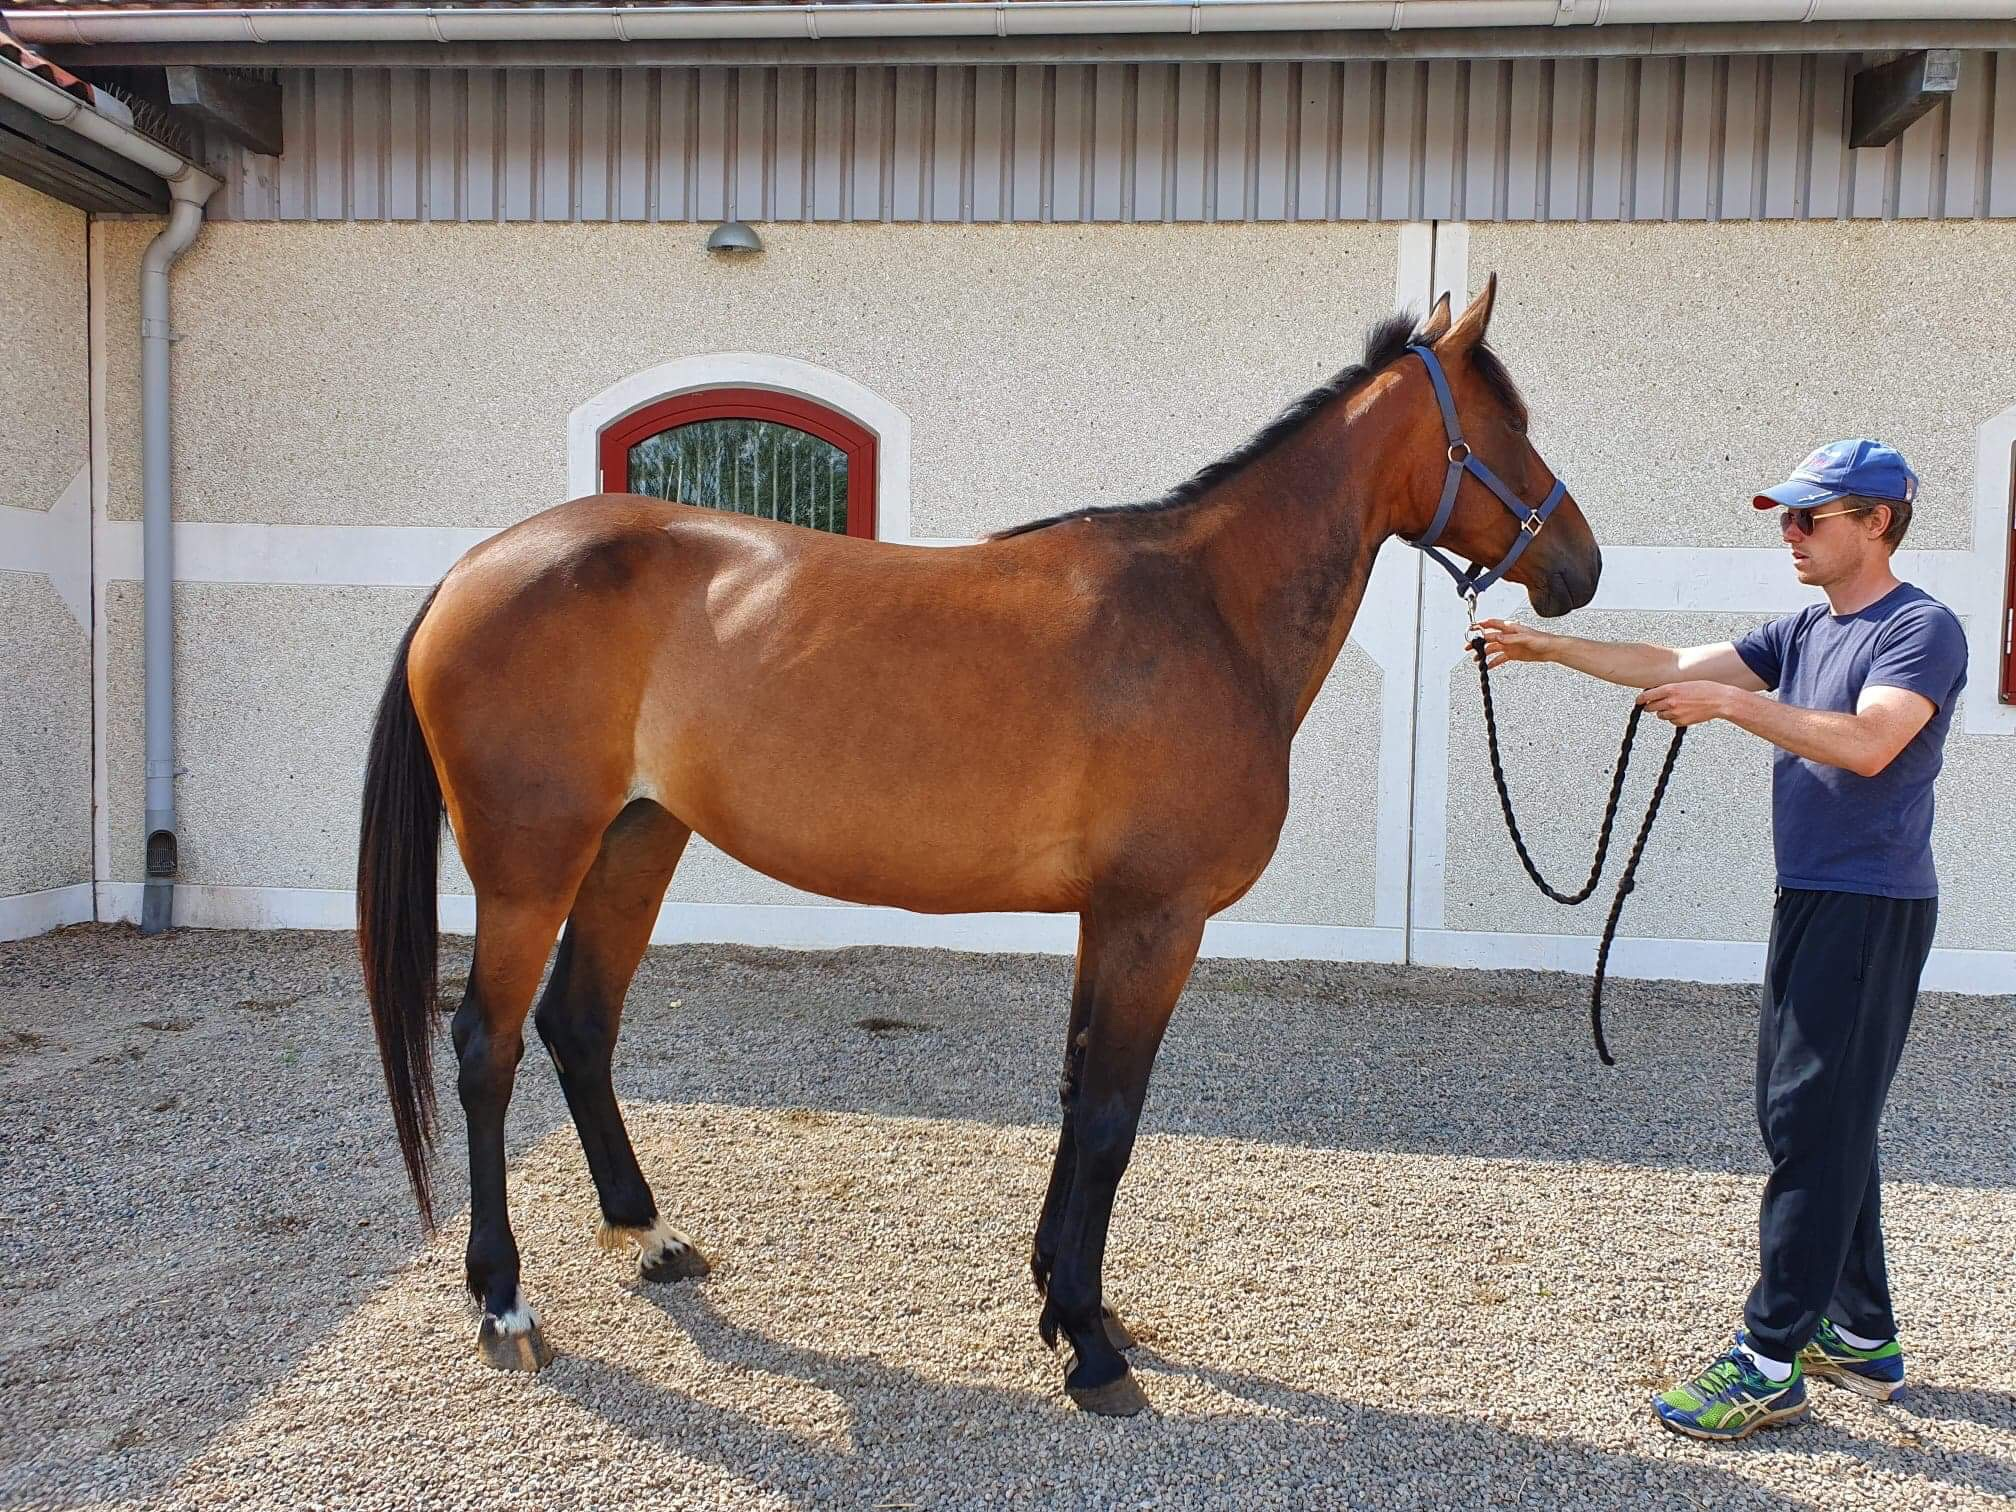 Top Fist Etoile, Face Time Bourbon, Stall Henessi, Trav,